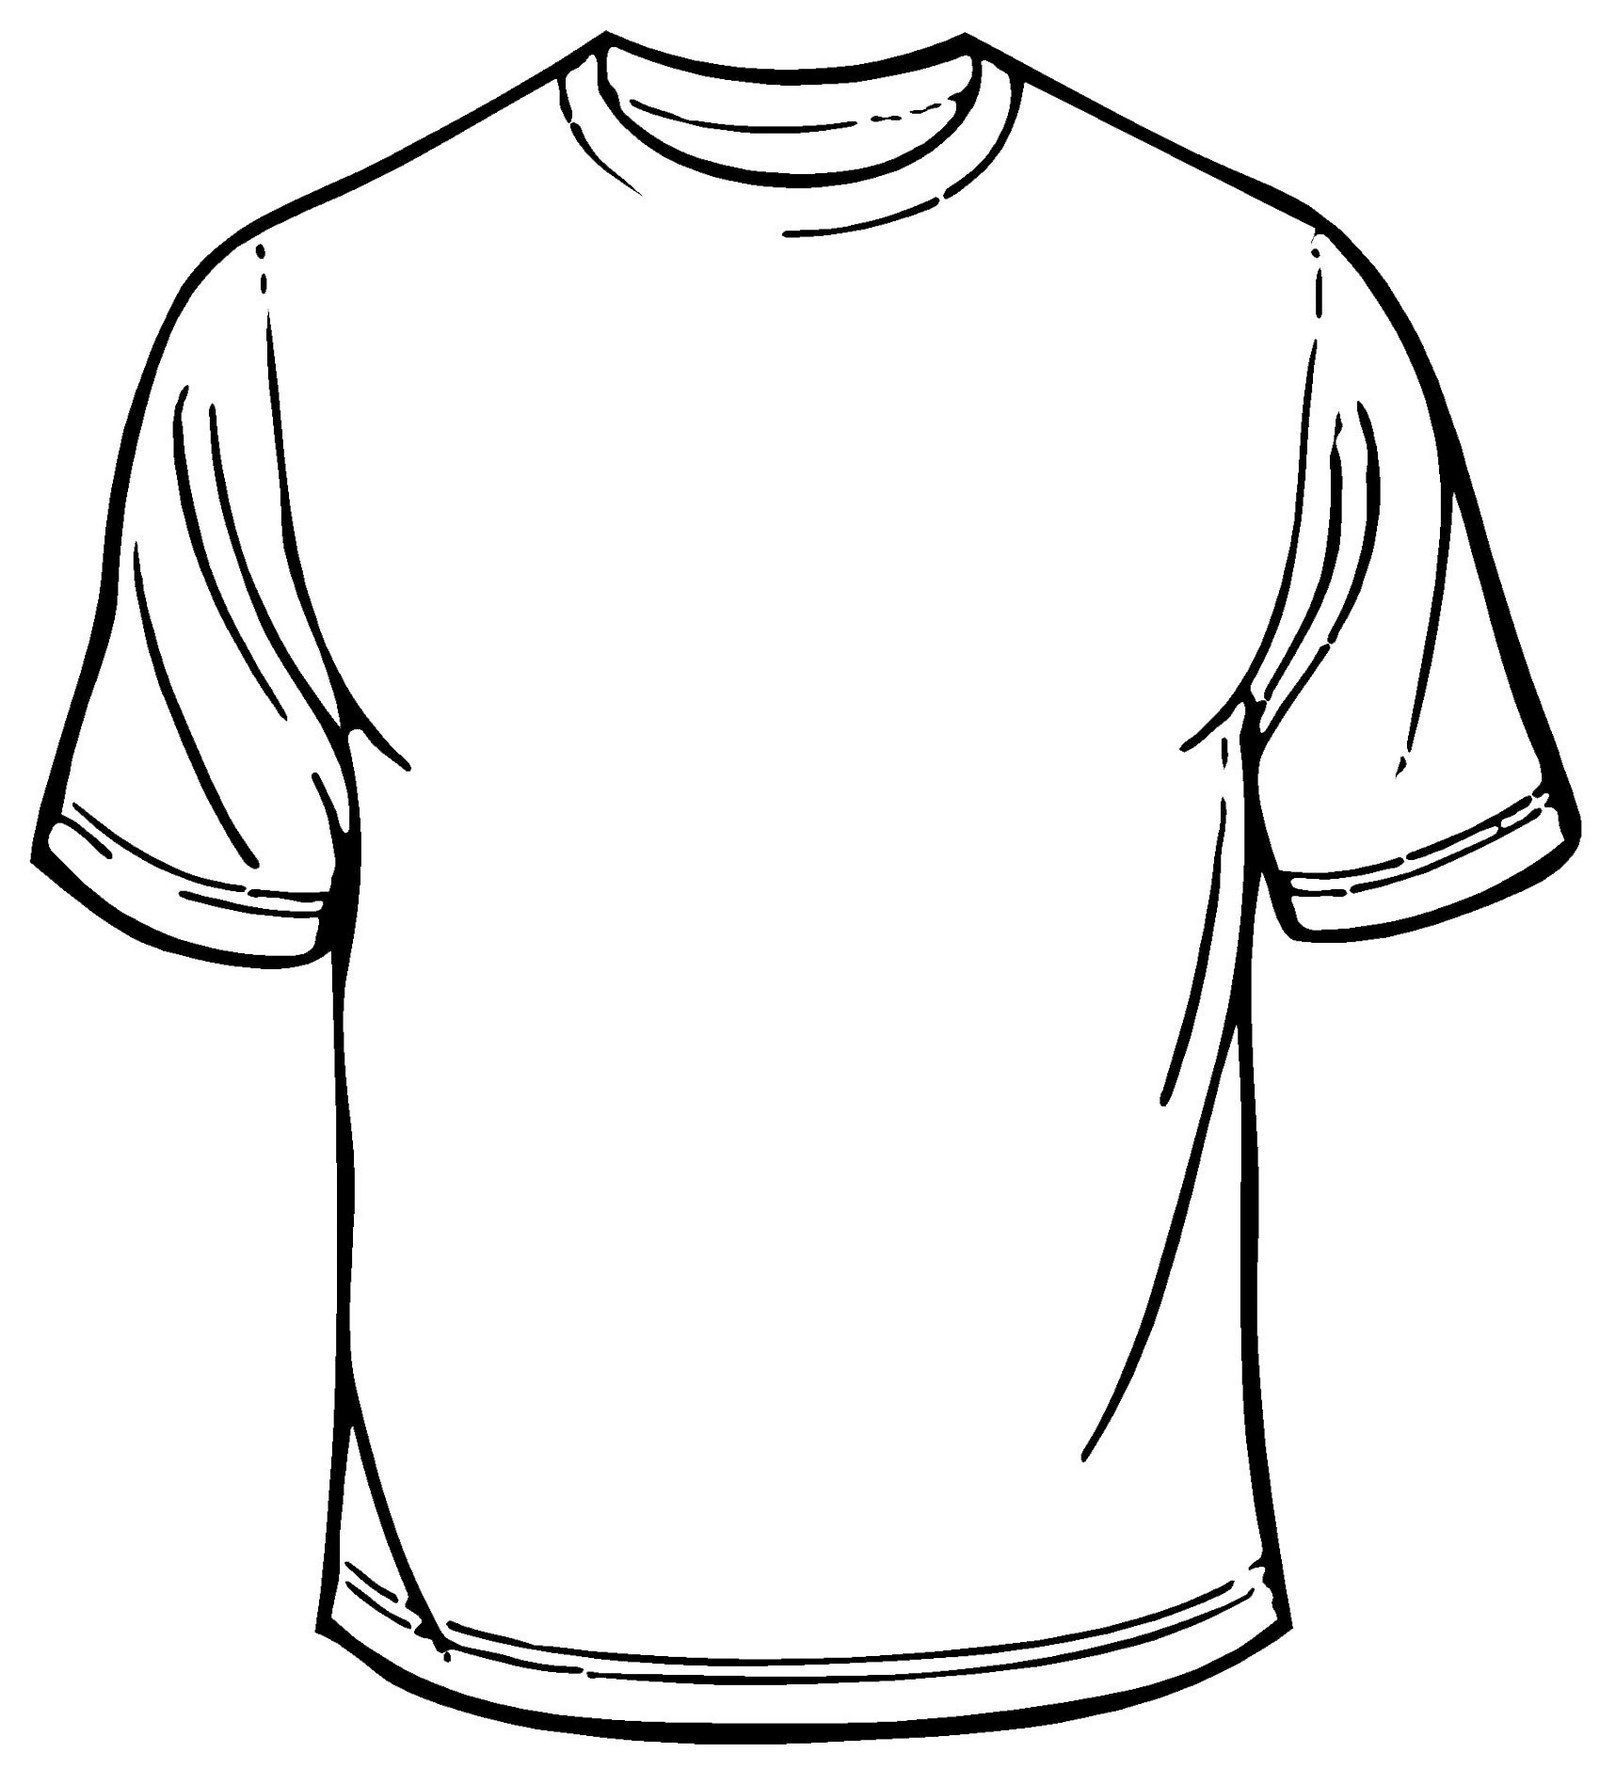 Blank T Shirt Coloring Sheet Printable Tshirt Coloring Page Pinterest Color Activities T Shirt Design Template Shirt Sketch Blank T Shirts